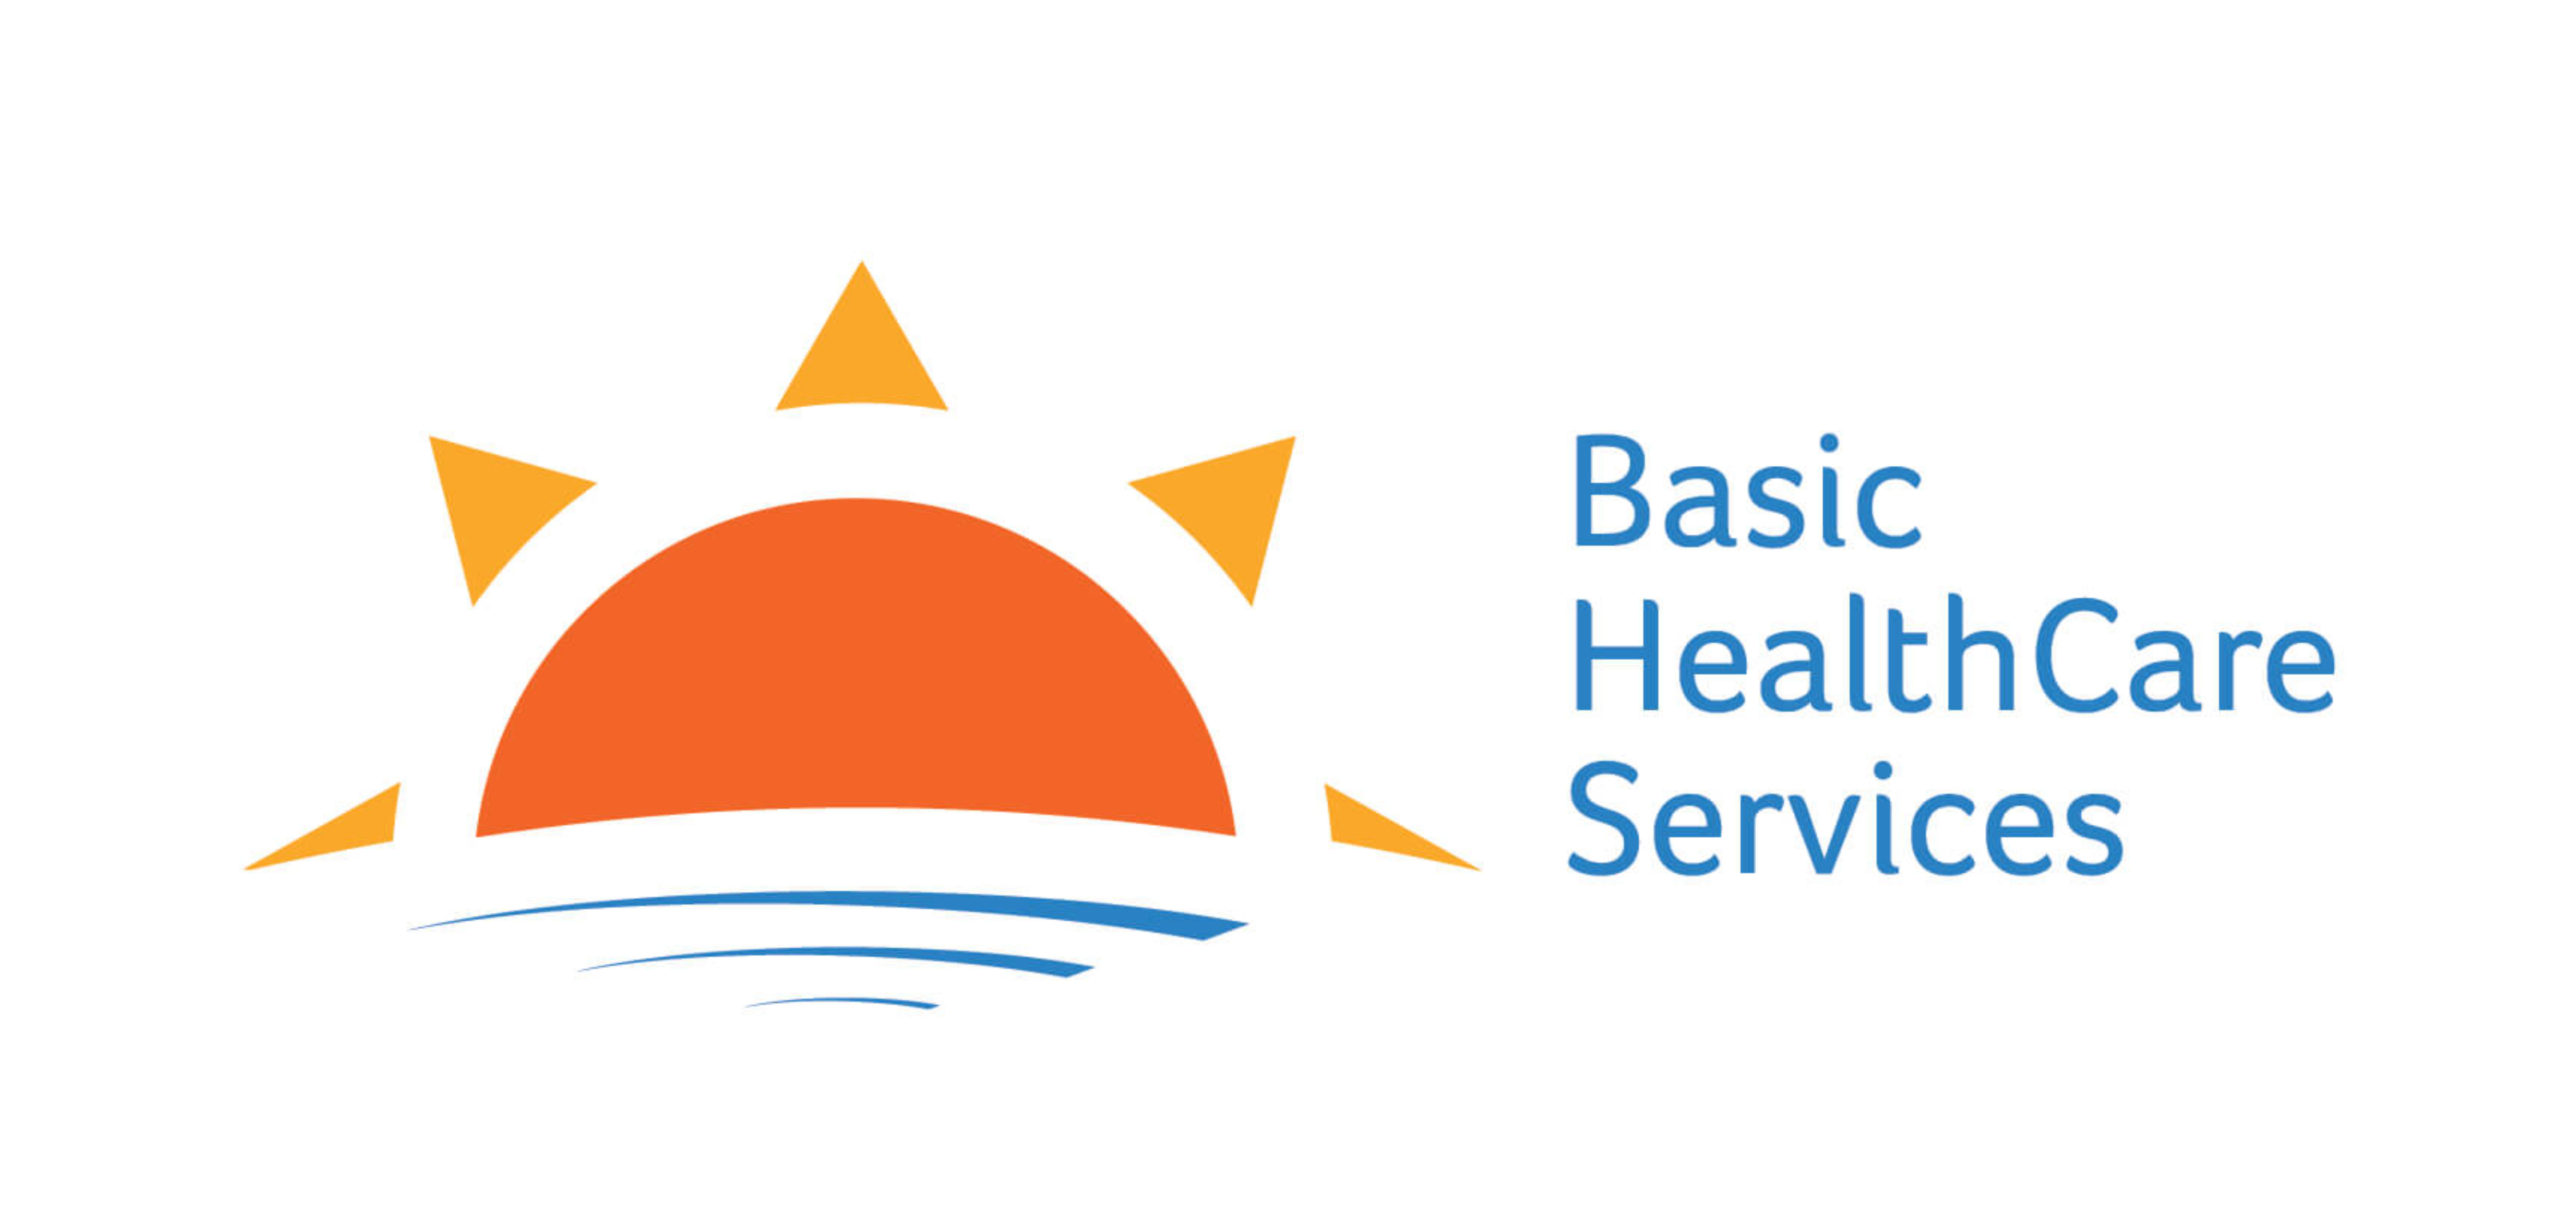 Basic HealthCare Services (BHS)